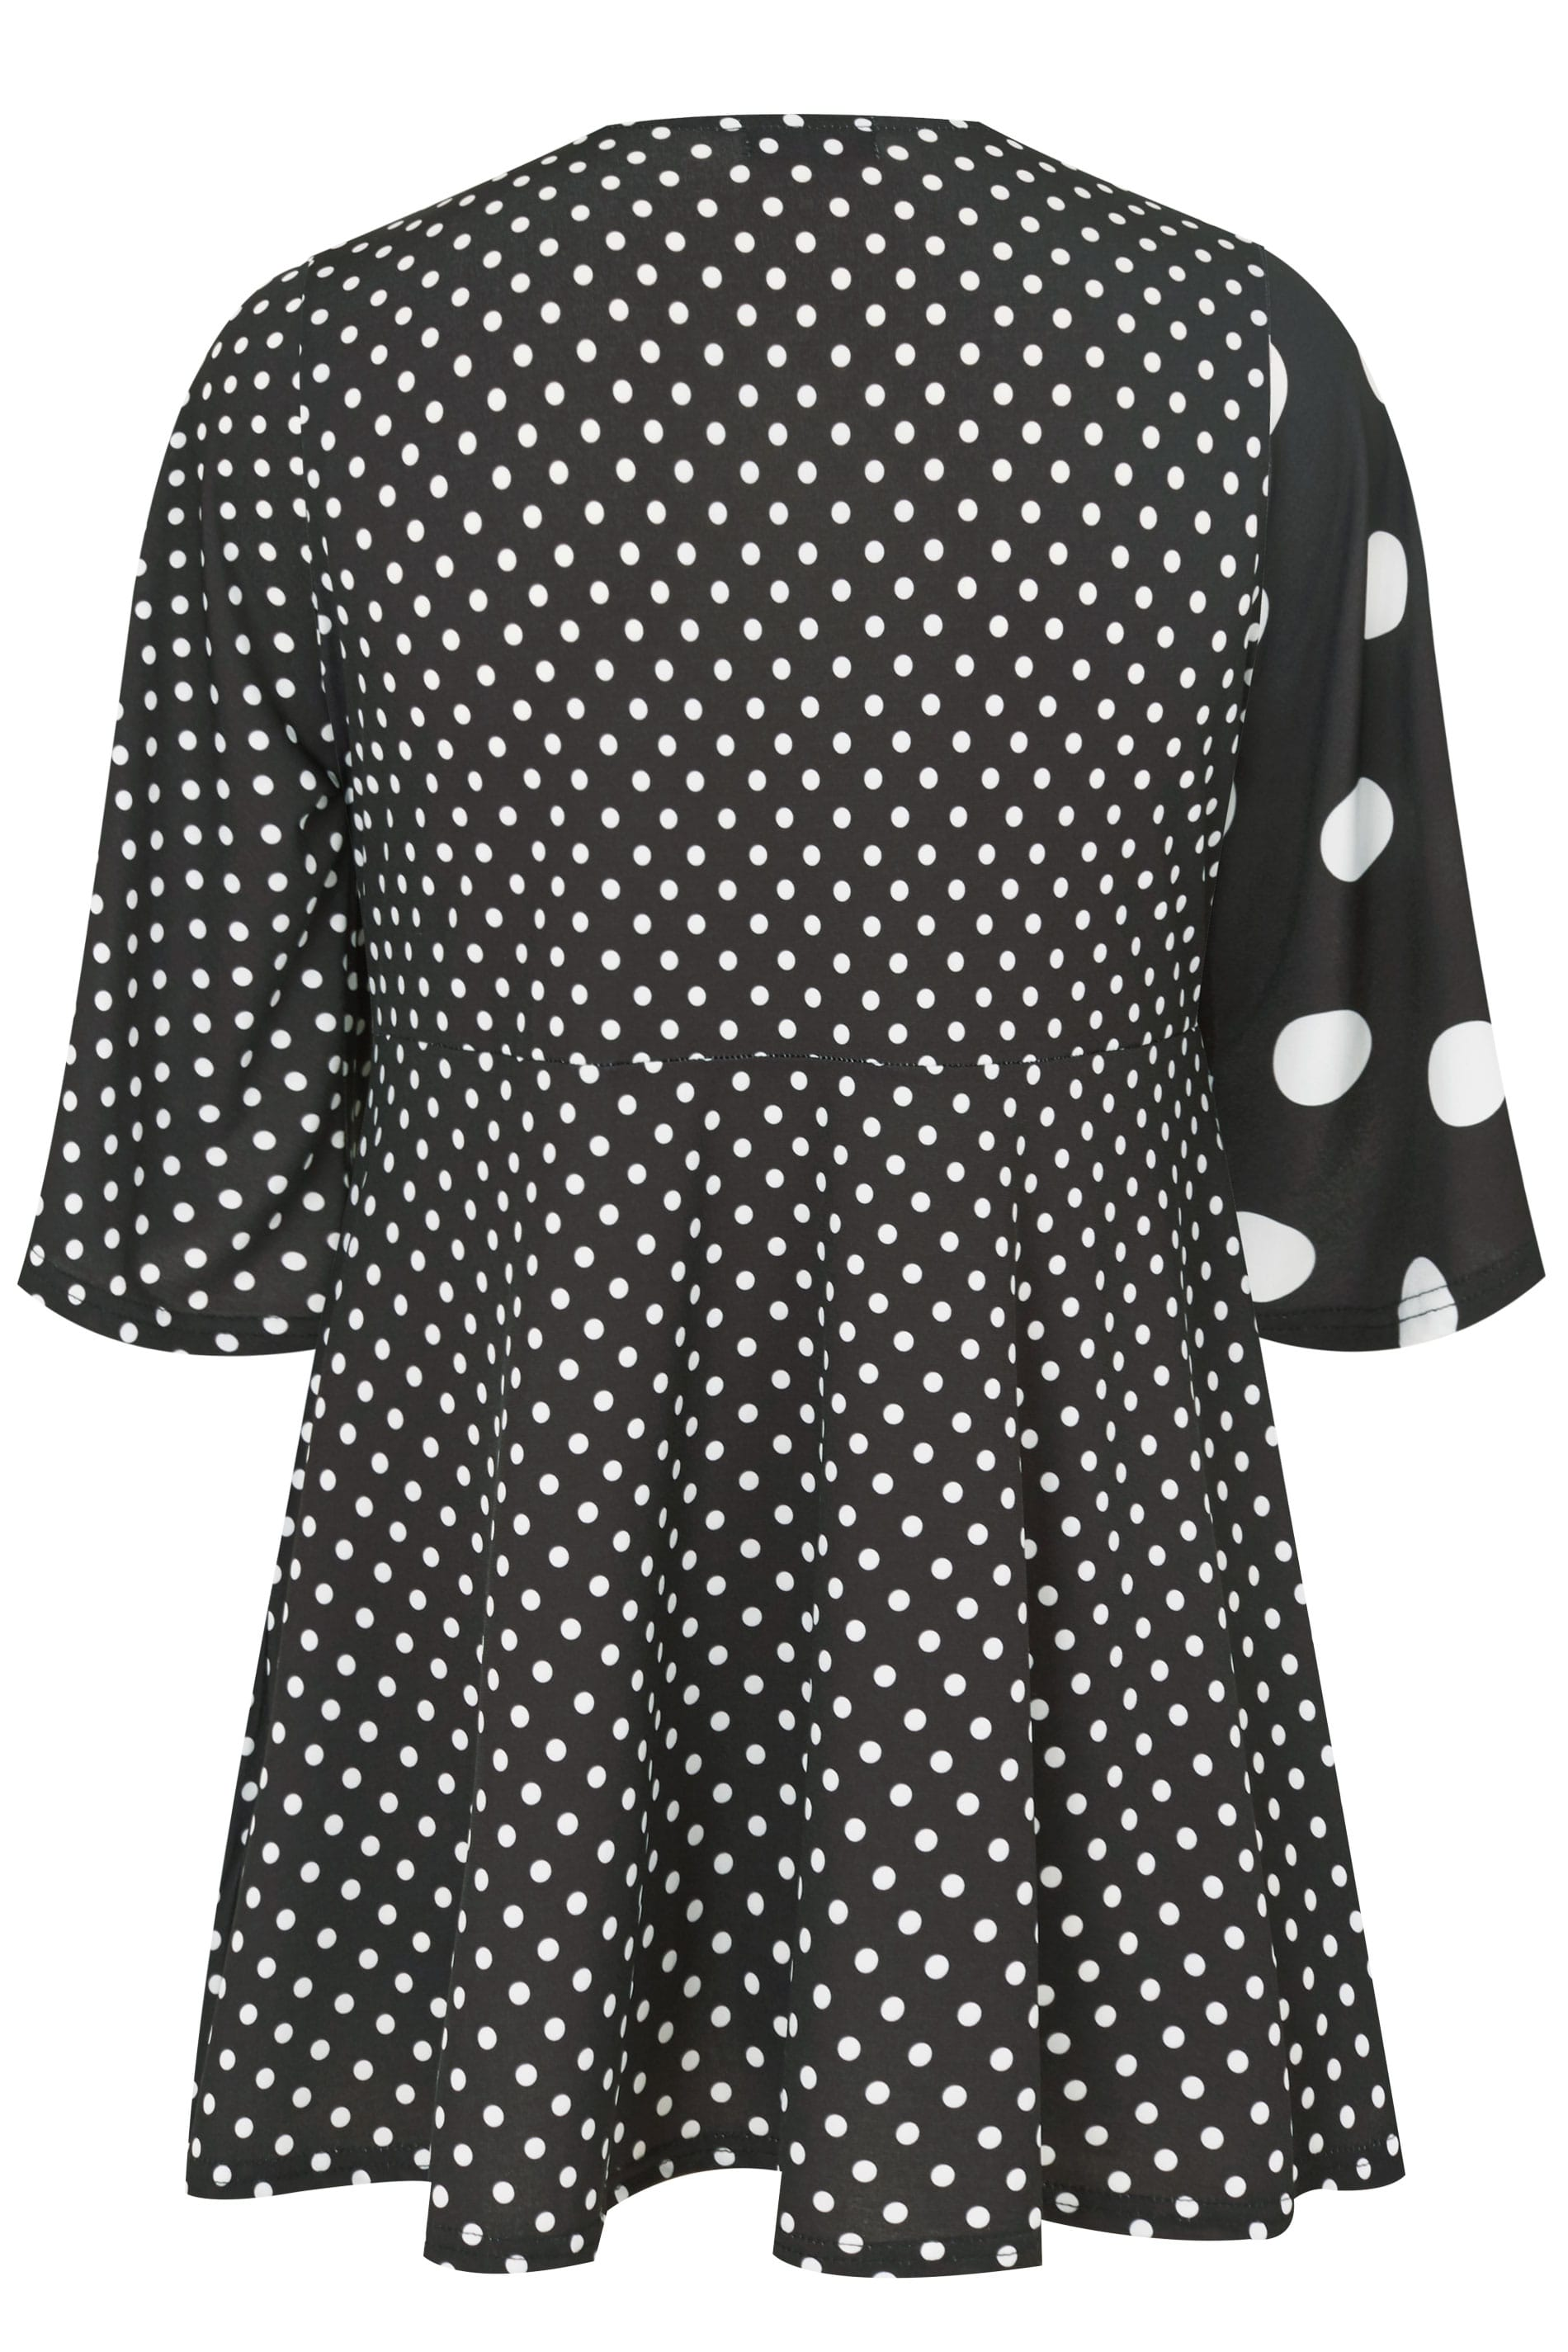 black white polka dot wrap blouse plus size 16 to 40. Black Bedroom Furniture Sets. Home Design Ideas